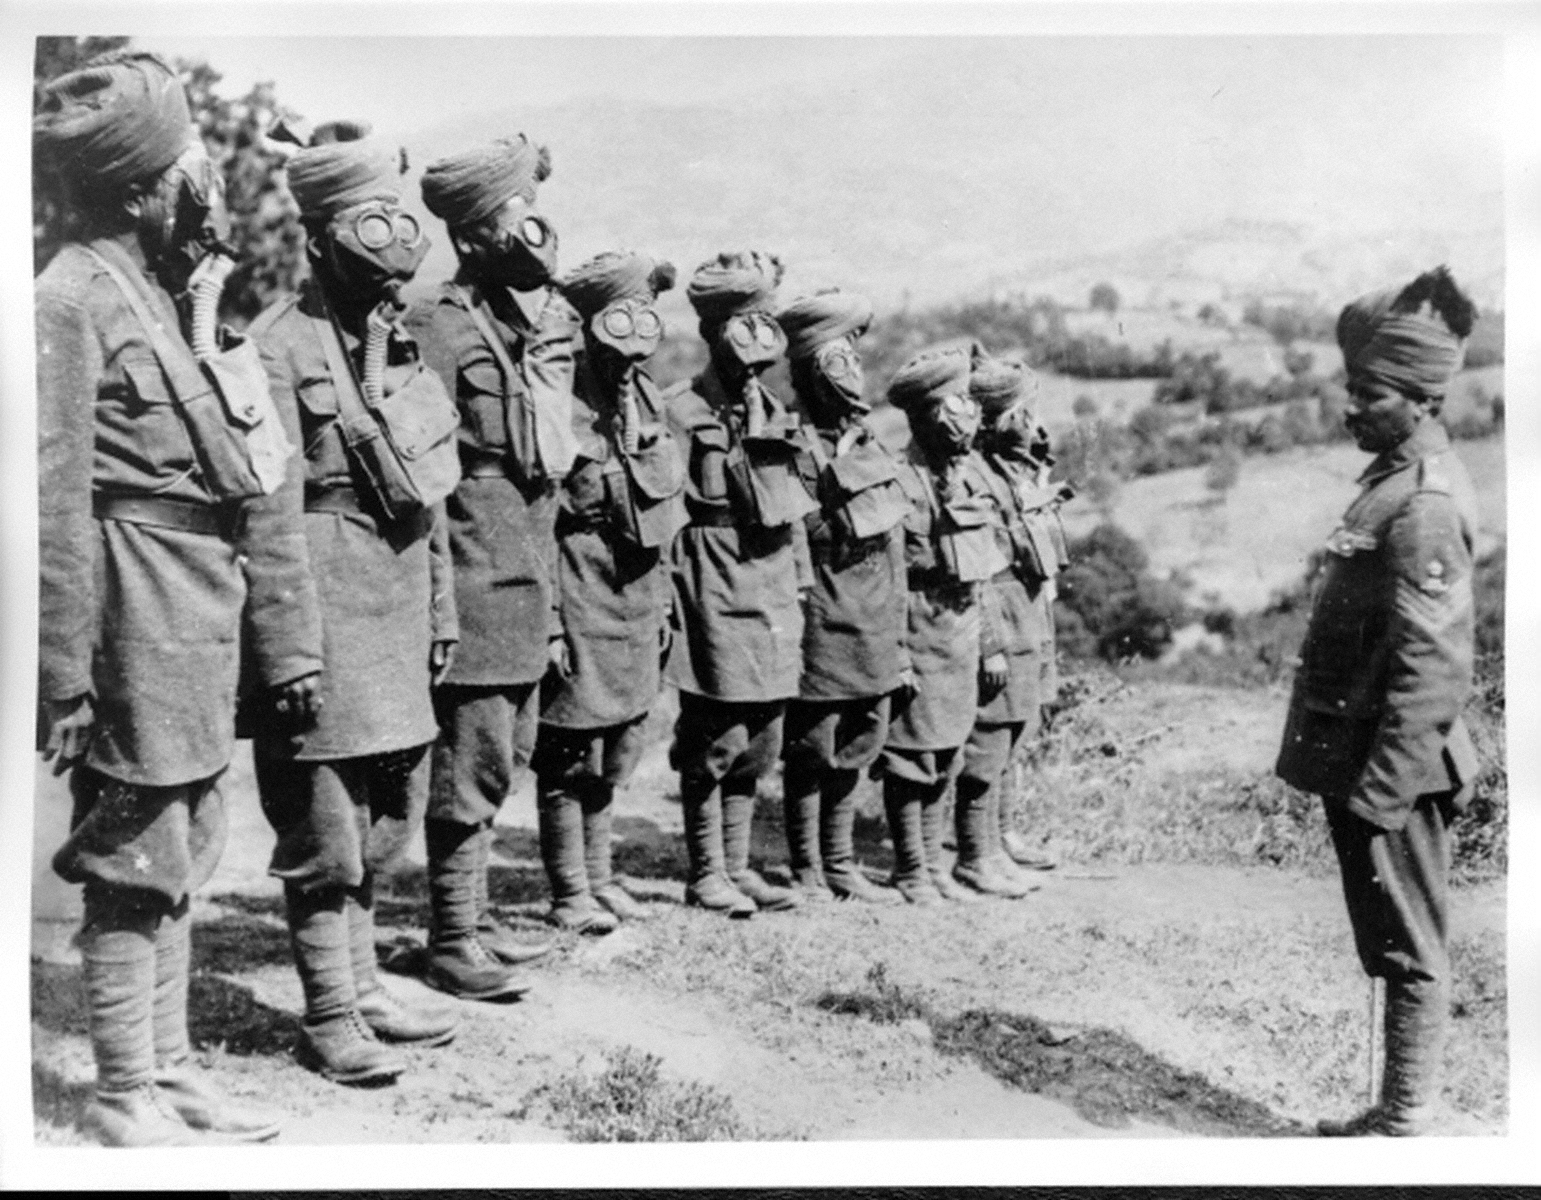 Indian pows in the ottoman empire during wwi indian troops at gas mask drill world war i source imperial war museum photographic archive publicscrutiny Images